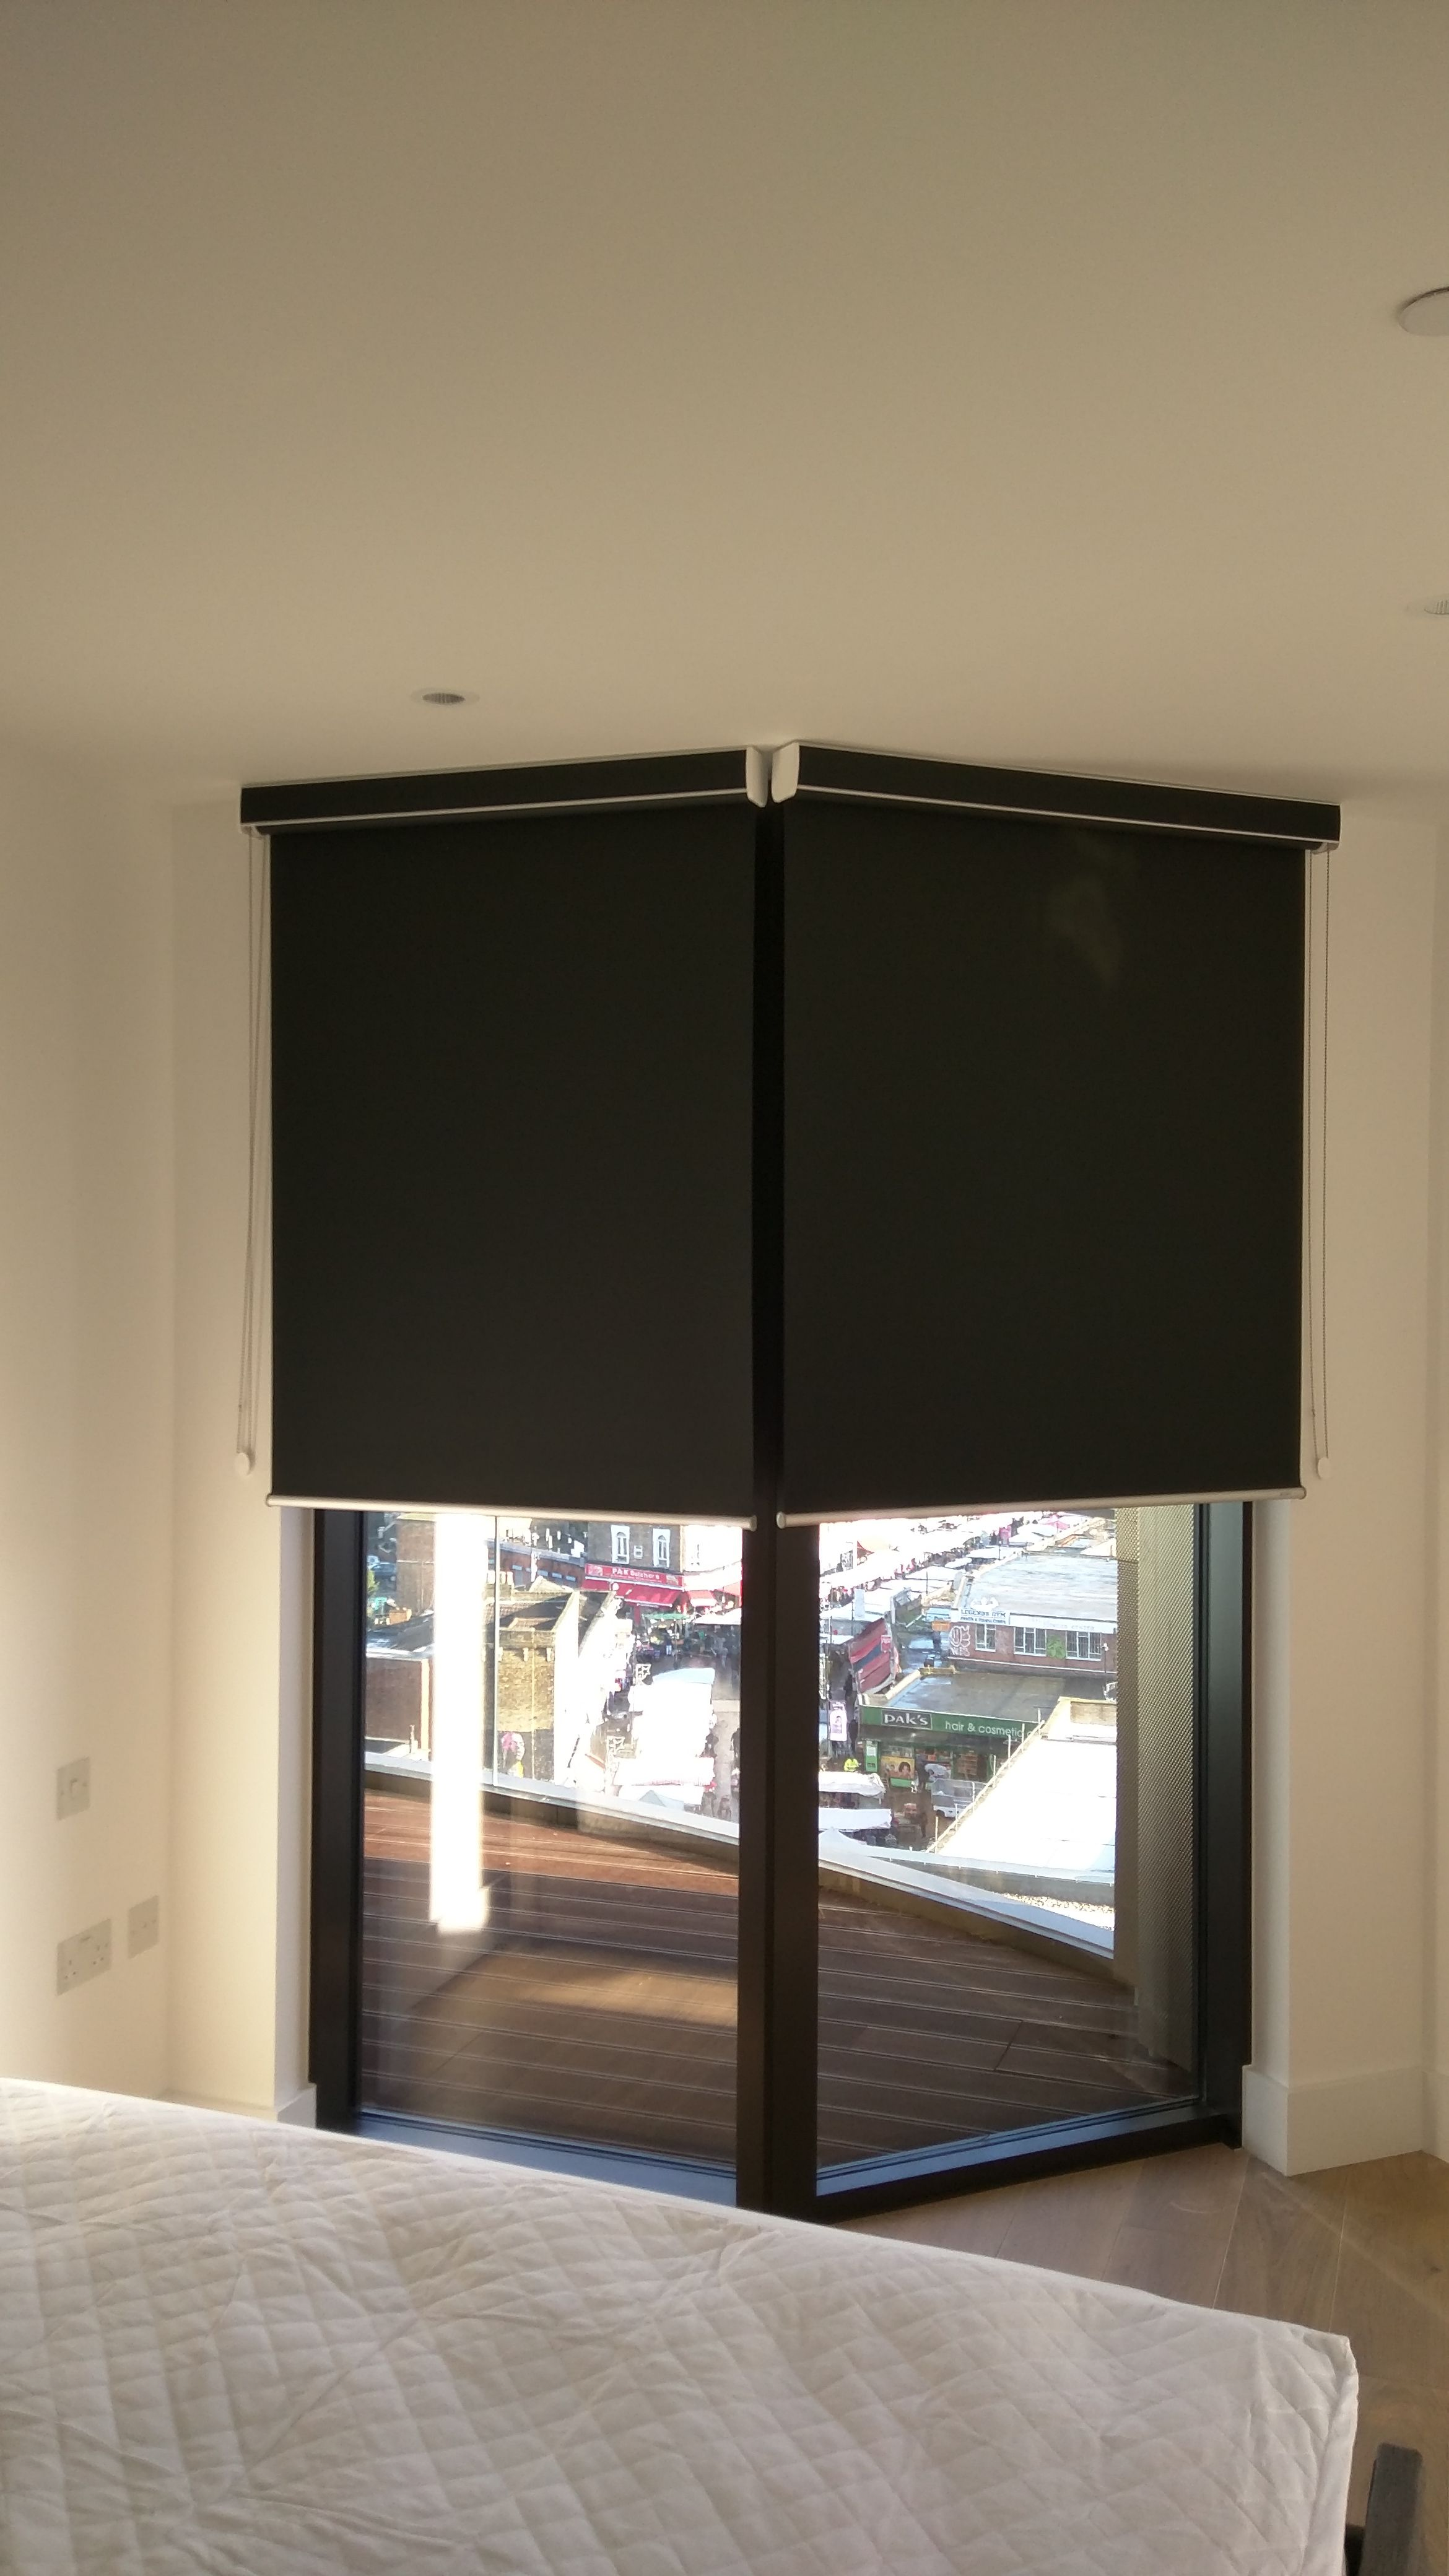 blackout blinds blackout roller blind with matching pelmet fitted outside the recess window EXPDSJT